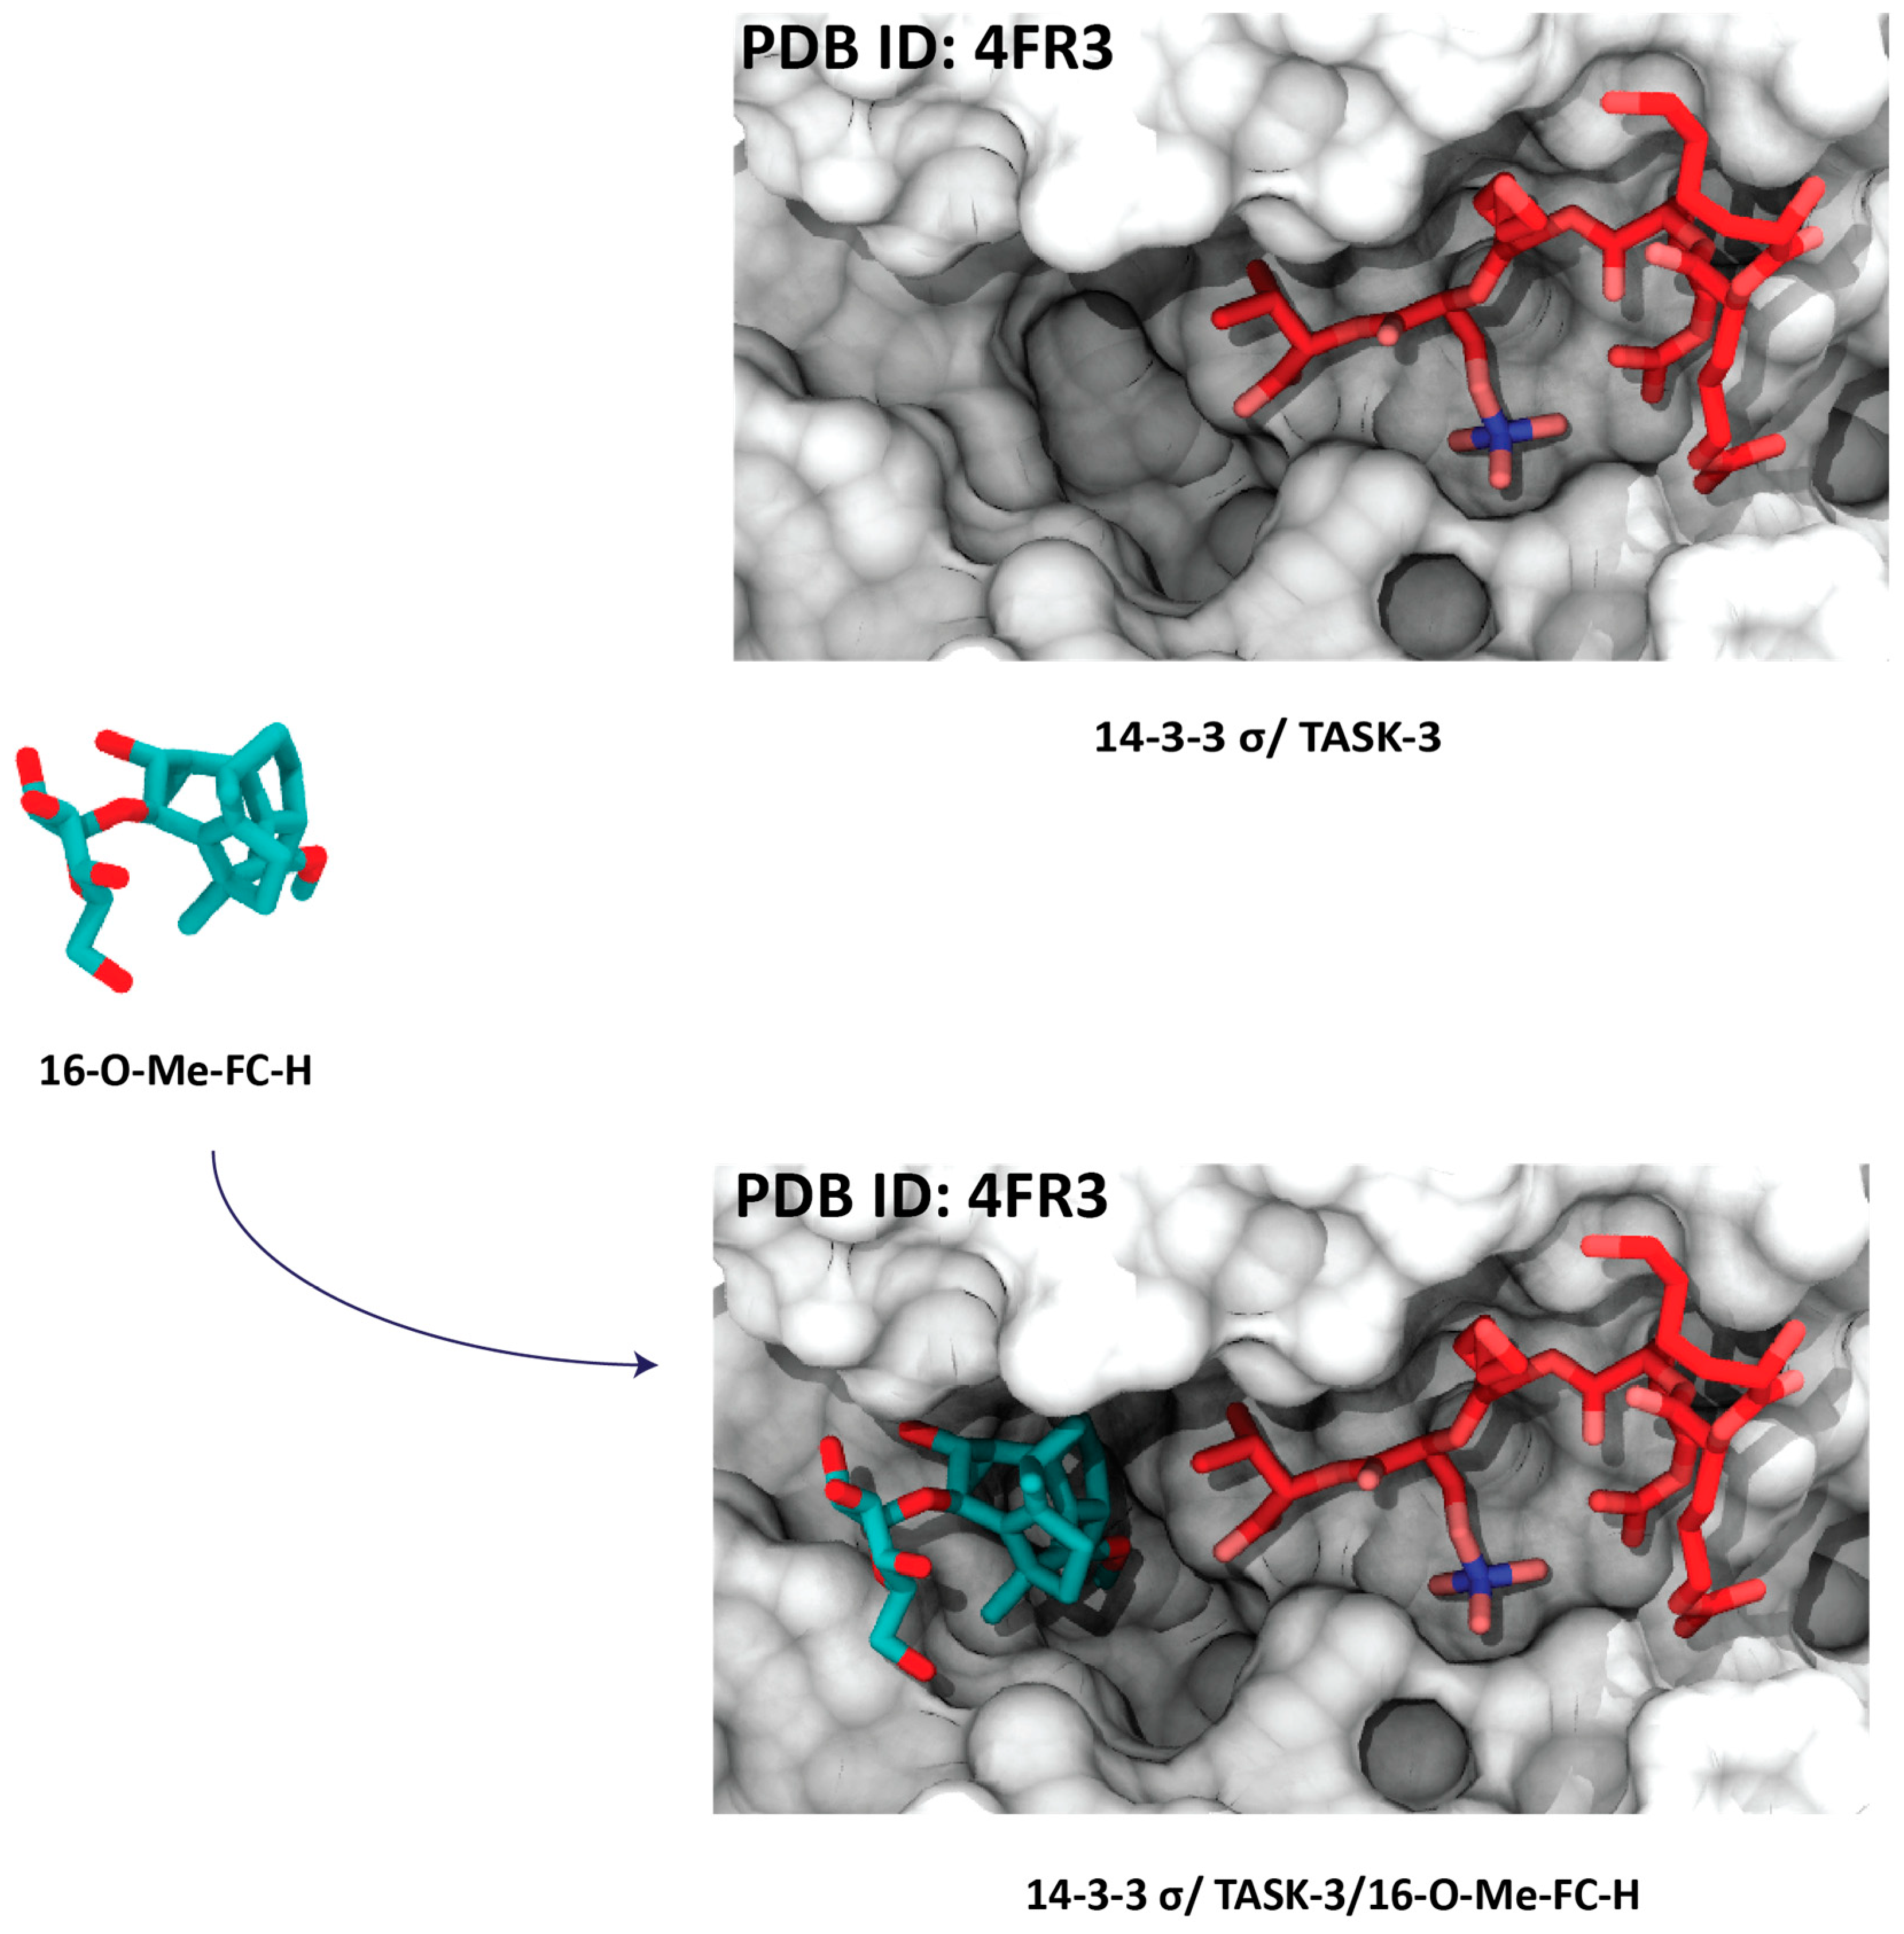 Molecules | Free Full-Text | 14-3-3: A Case Study in PPI